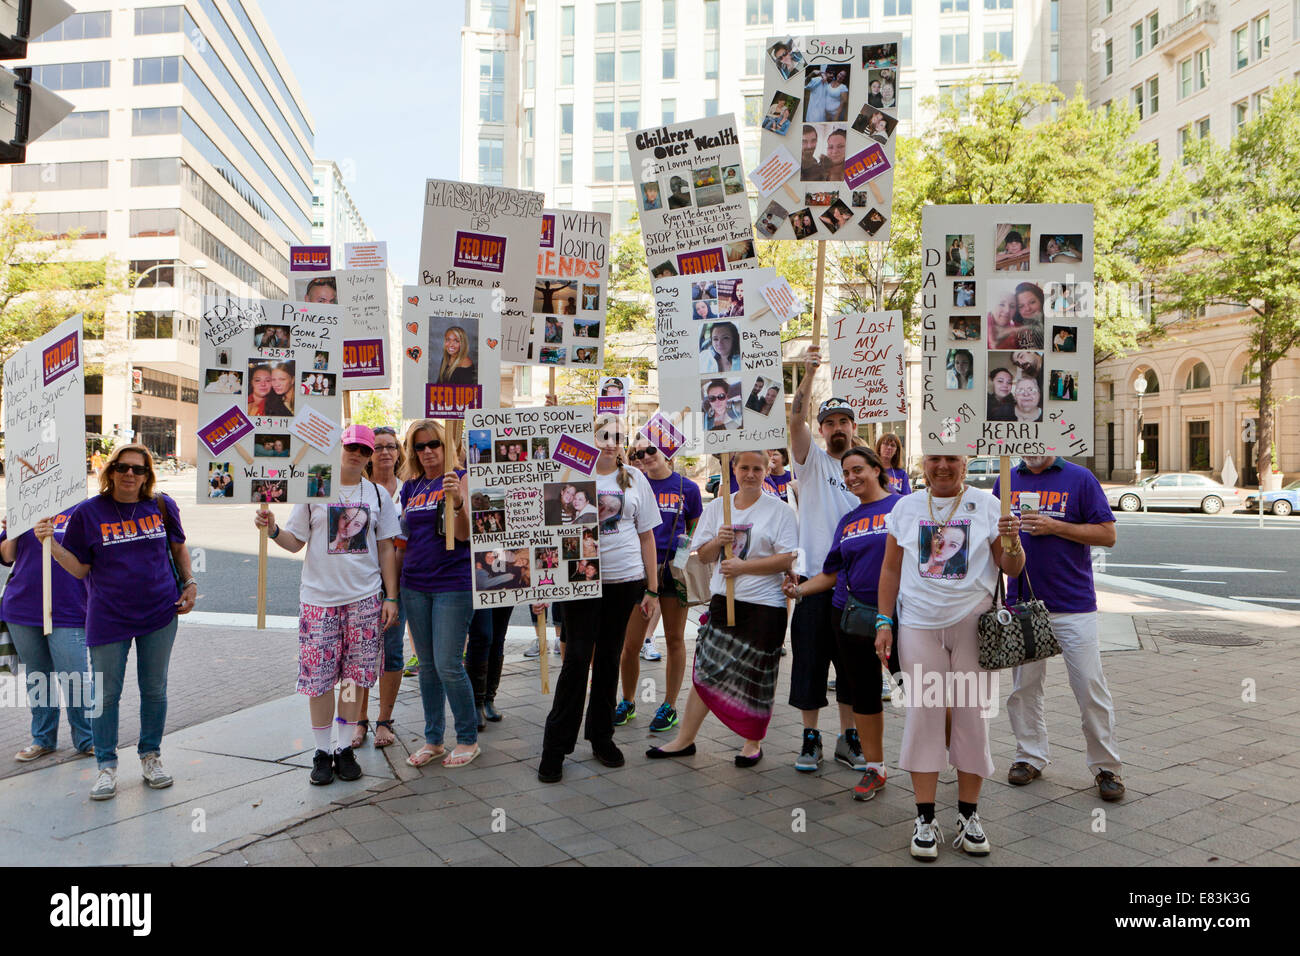 Fed Up! Coalition marching for the end the epidemic of Opioid addiction and overdose deaths - Washington, DC USA - Stock Image